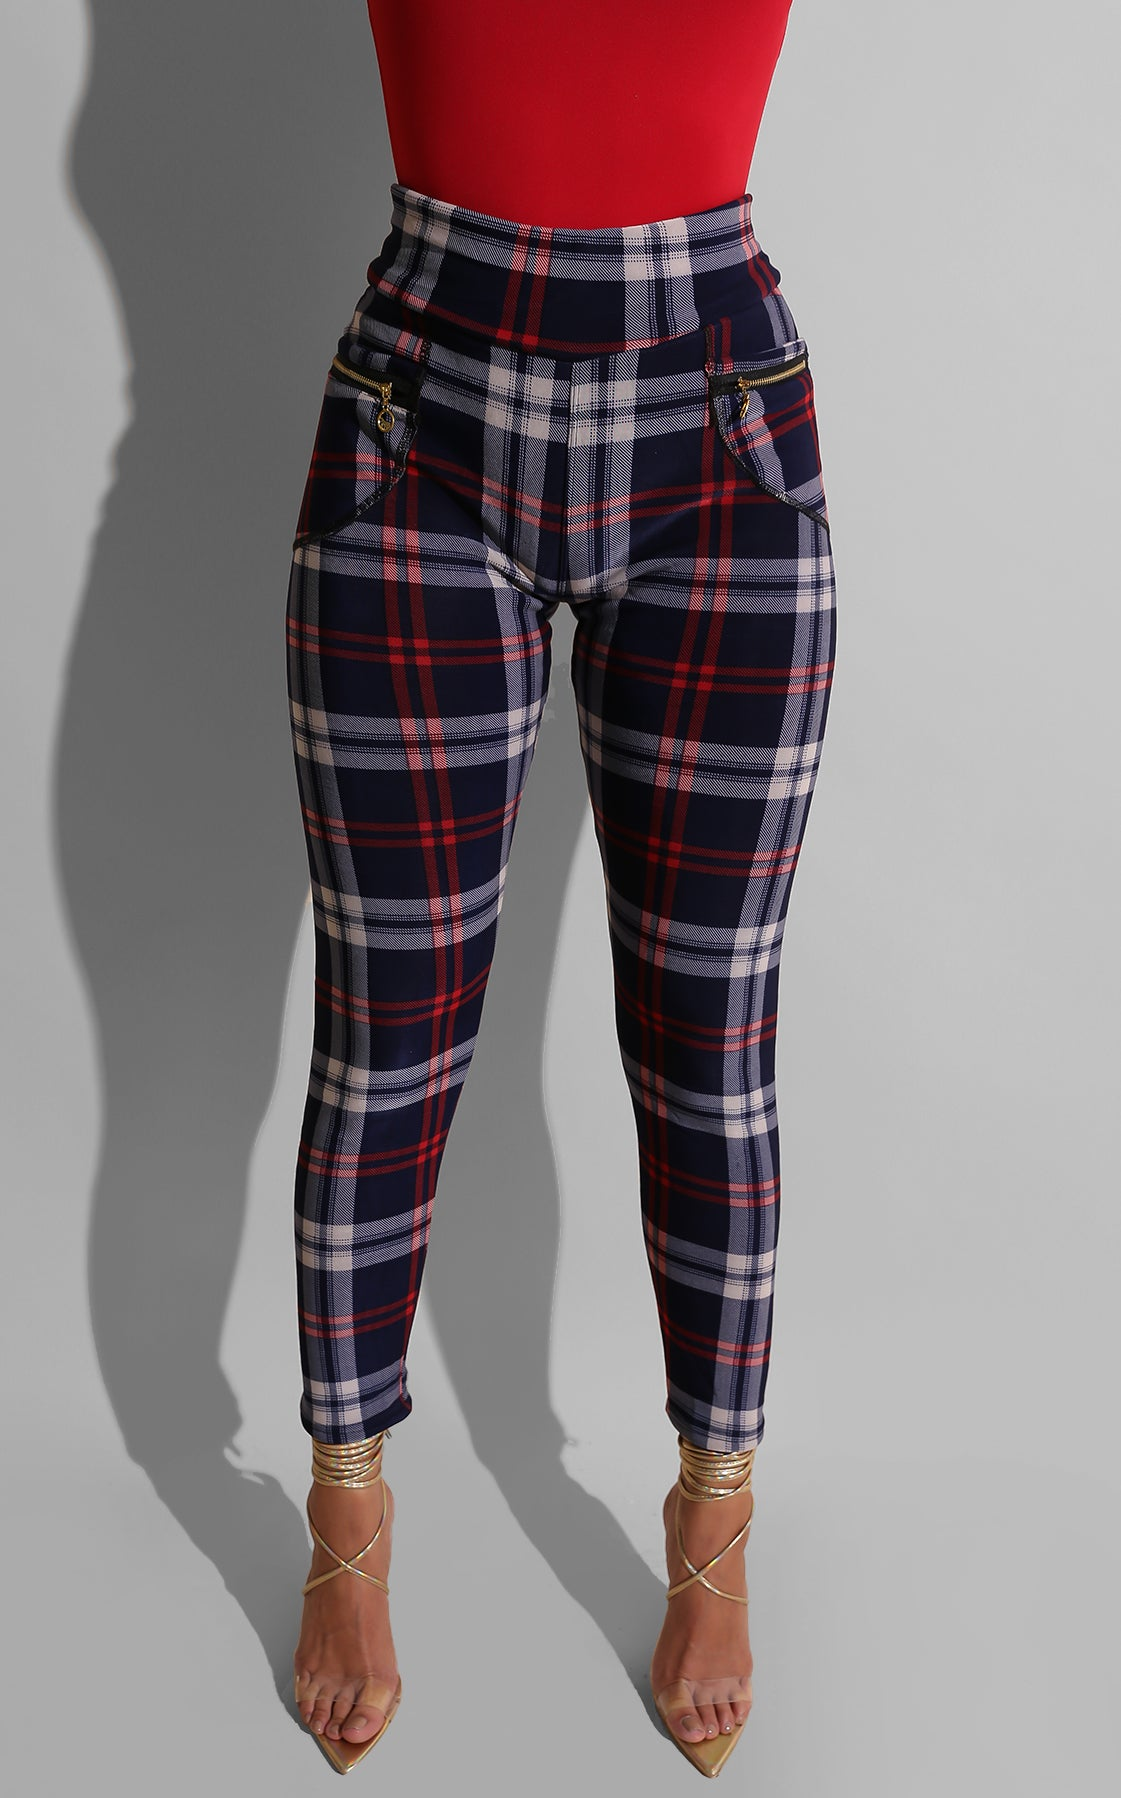 As If Plaid Pants Cheer